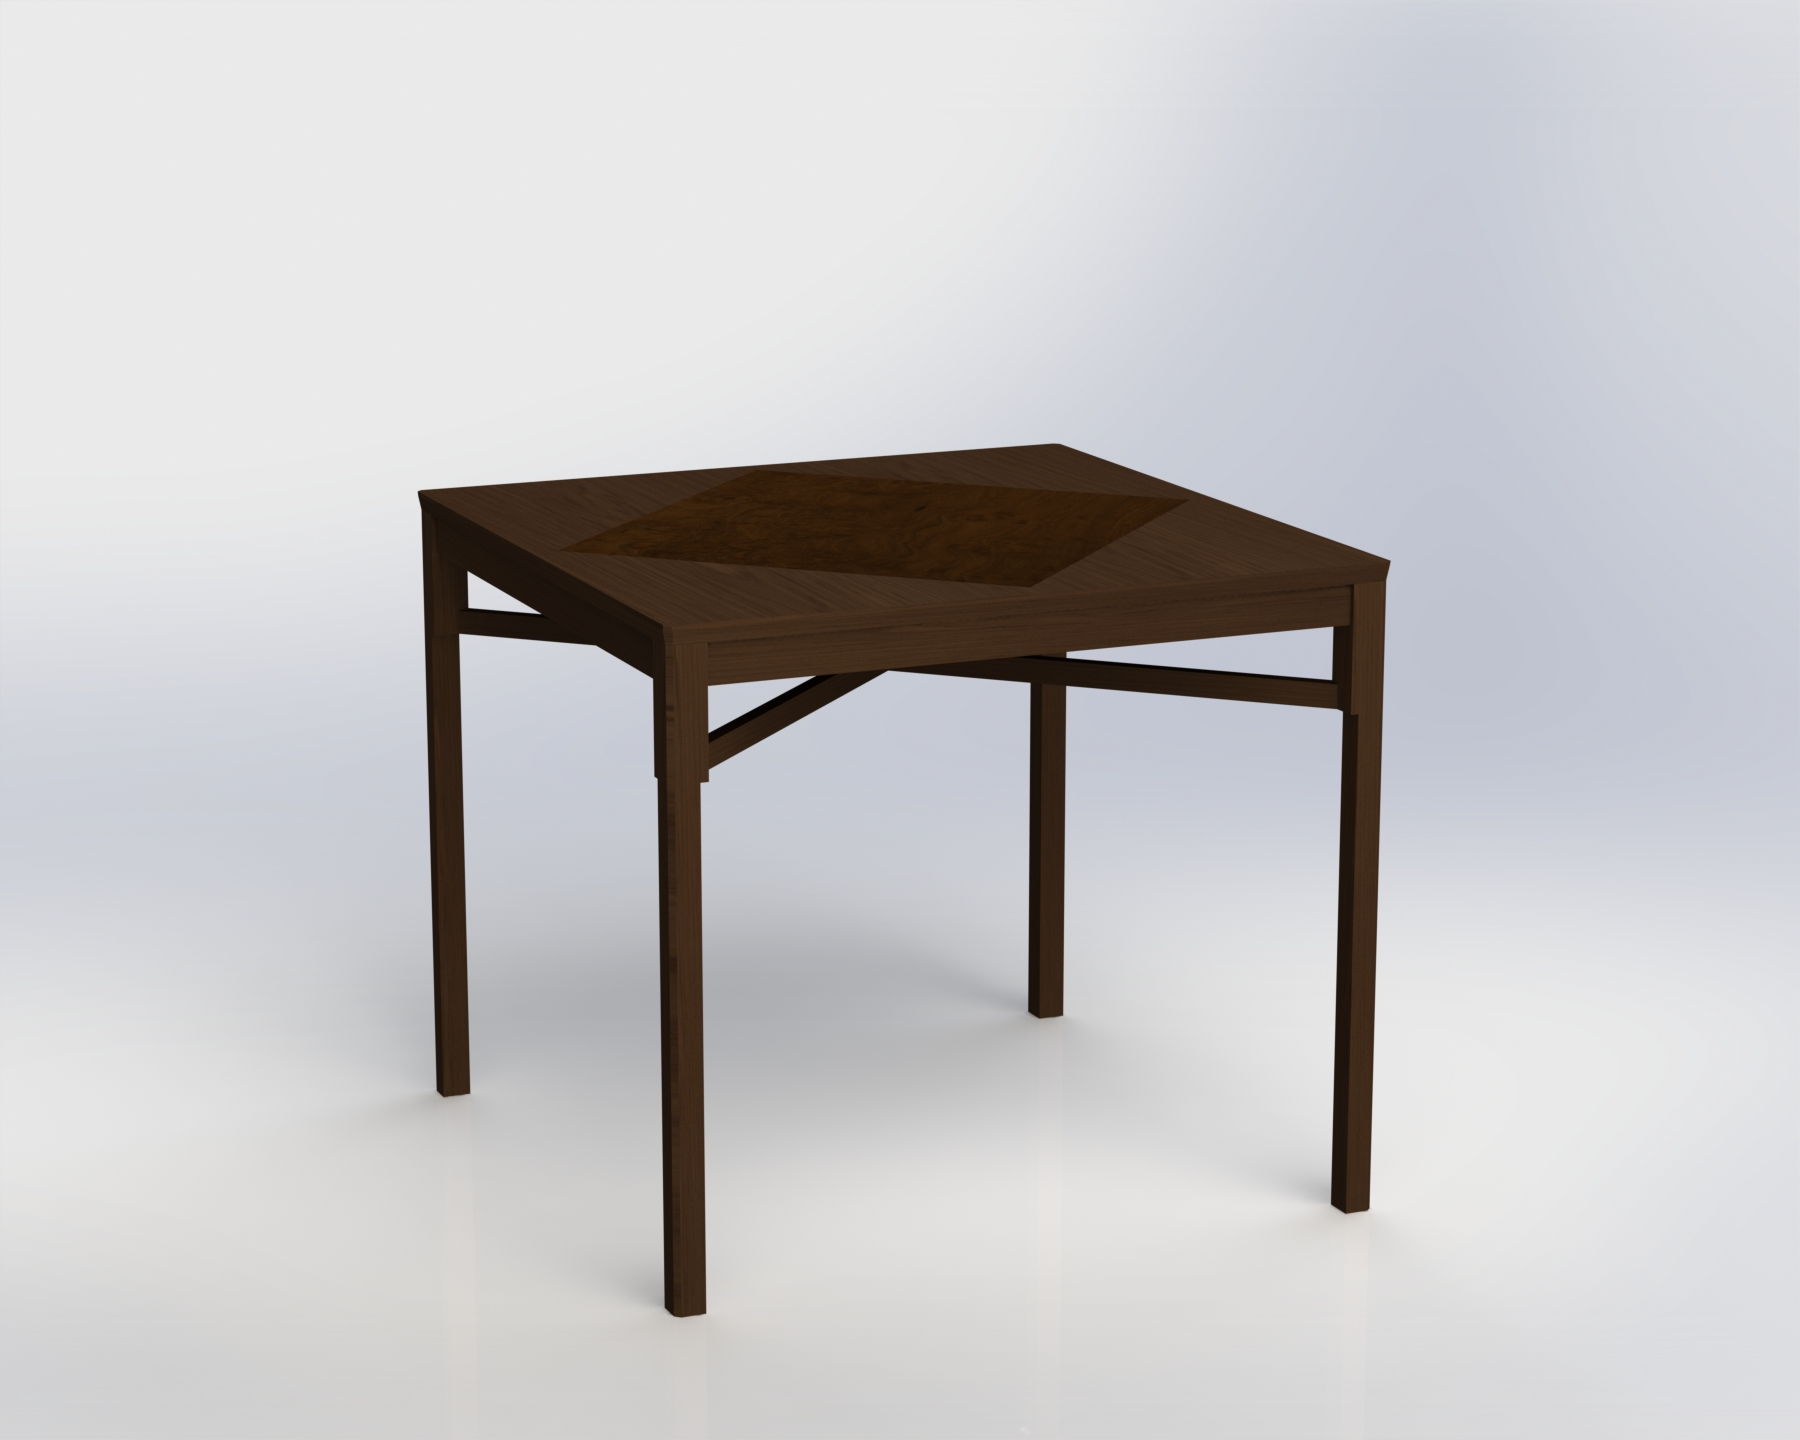 walnut_card_table_perspective.JPG